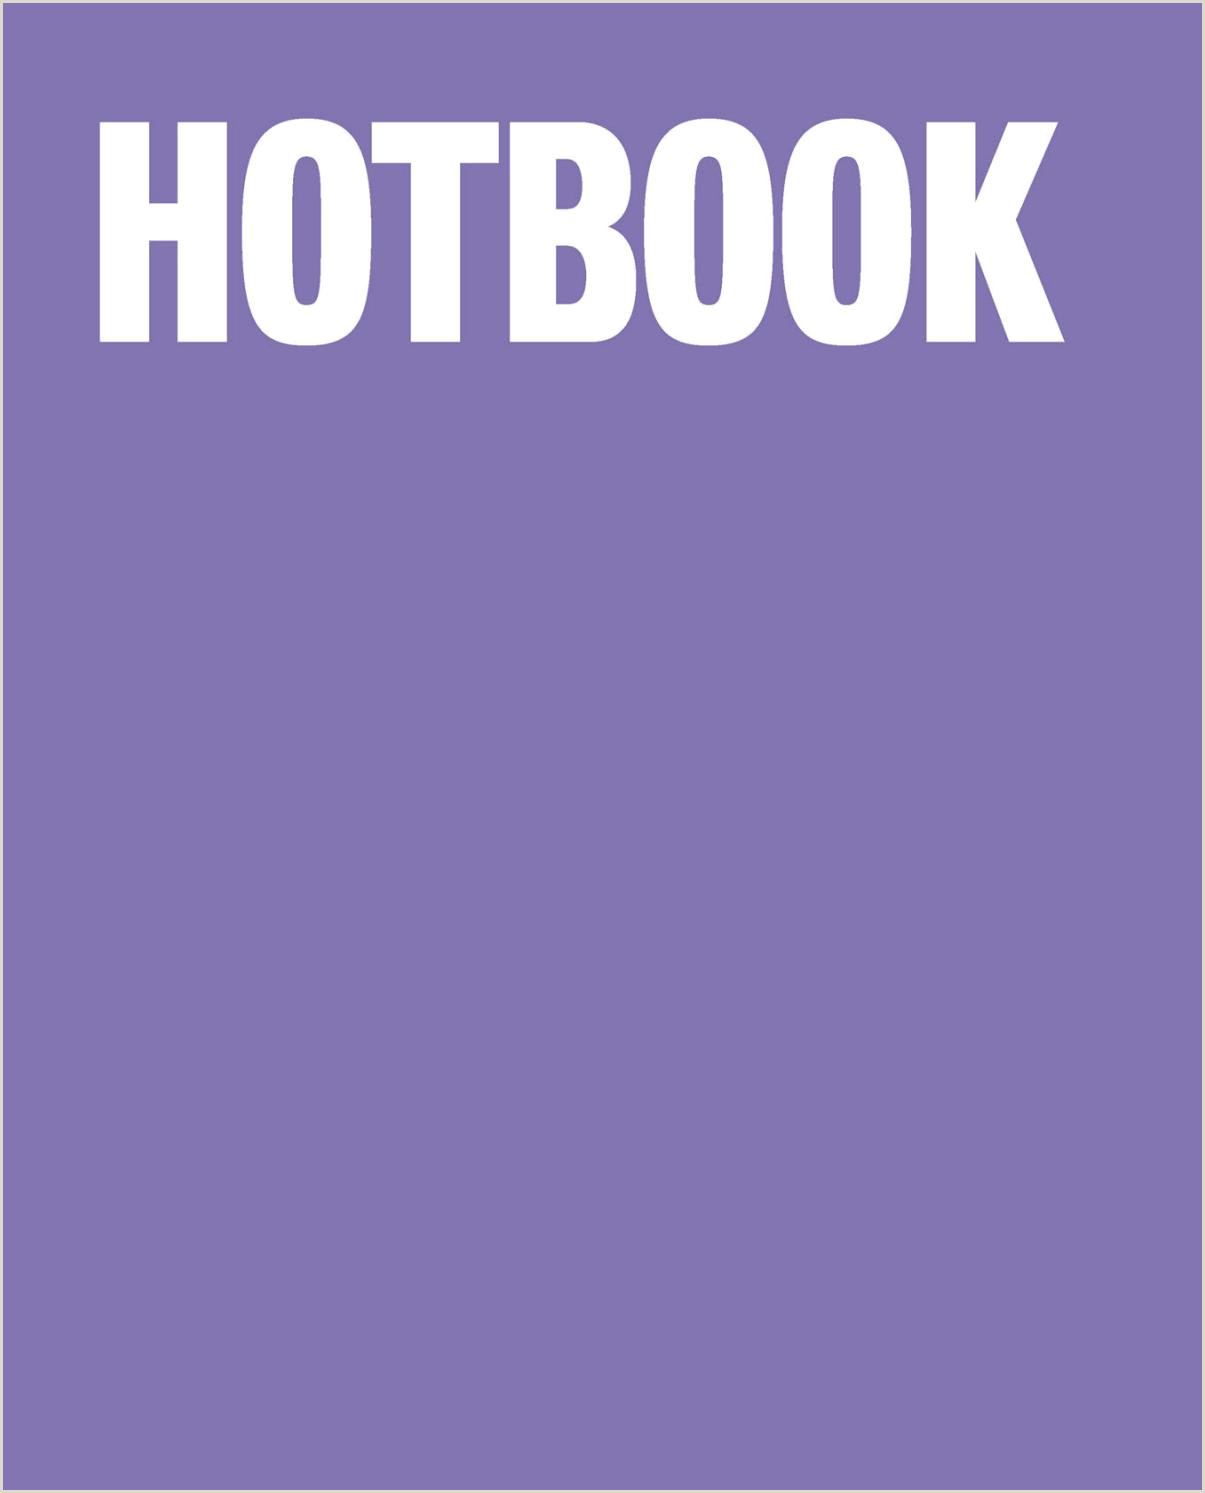 HOTBOOK 006 by HOTBOOK issuu